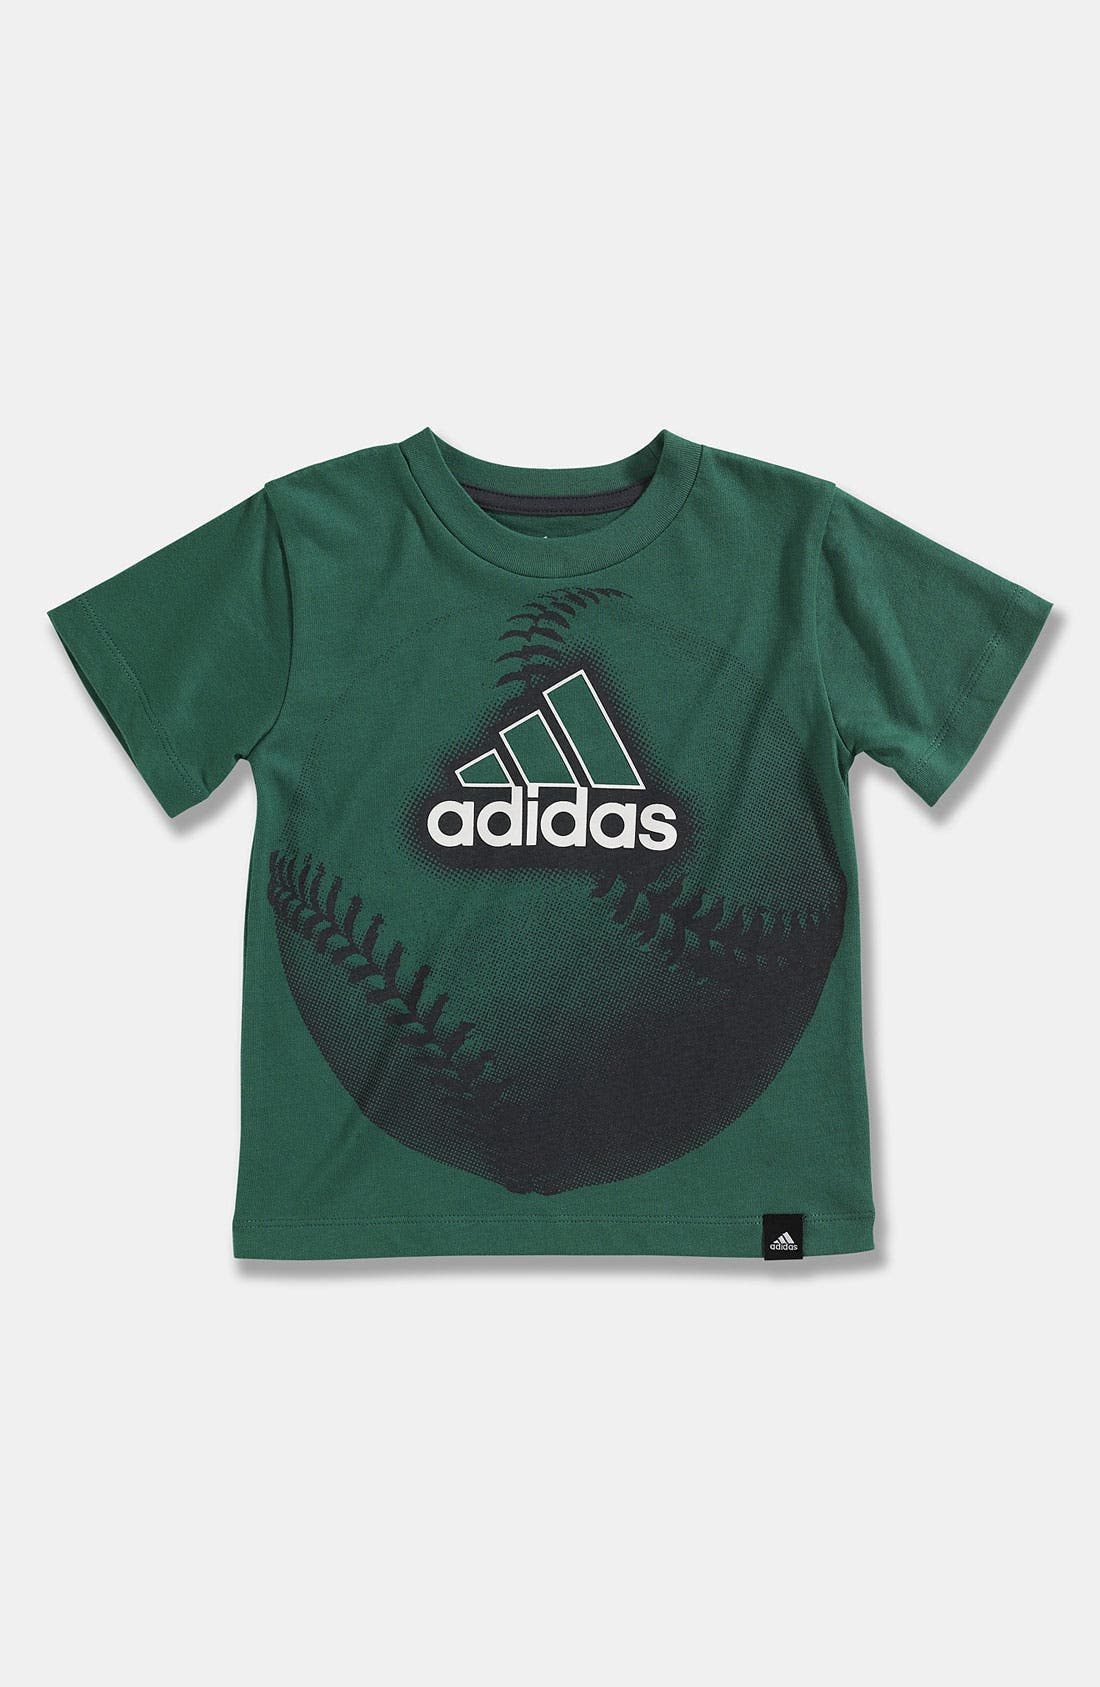 Main Image - adidas 'Big Ball' T-Shirt (Toddler)